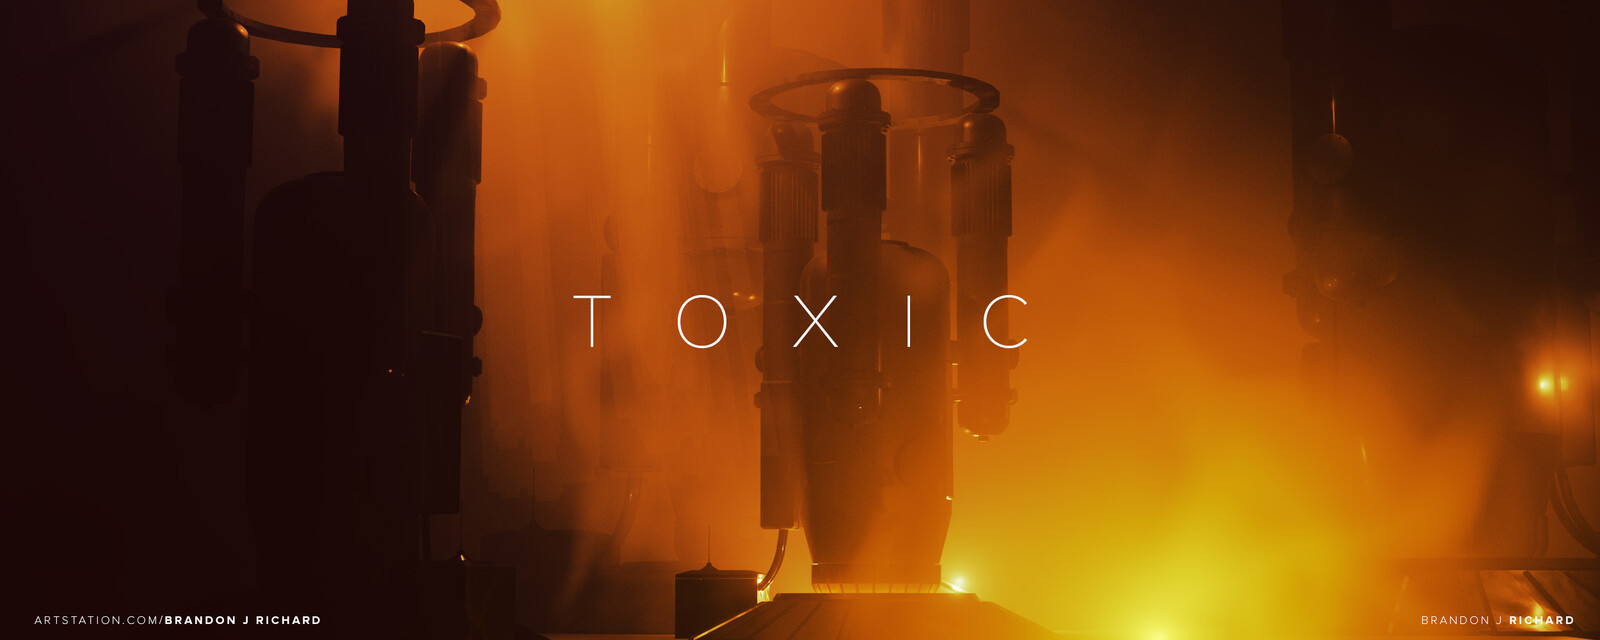 TOXIC Mood Art 1